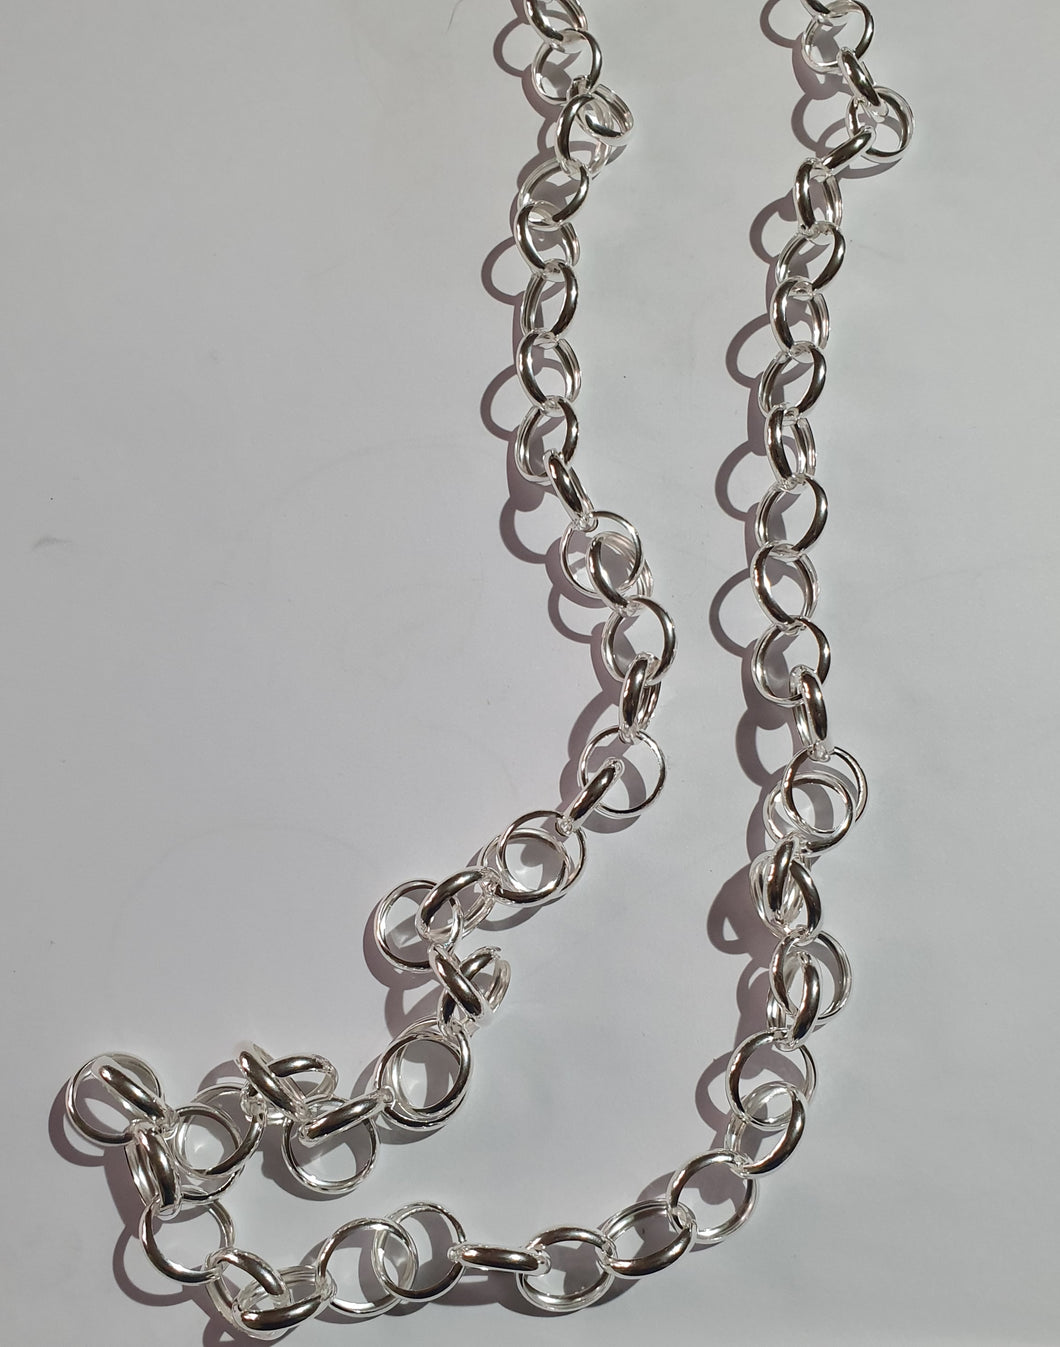 Long belcher chain with a signoretti clasp